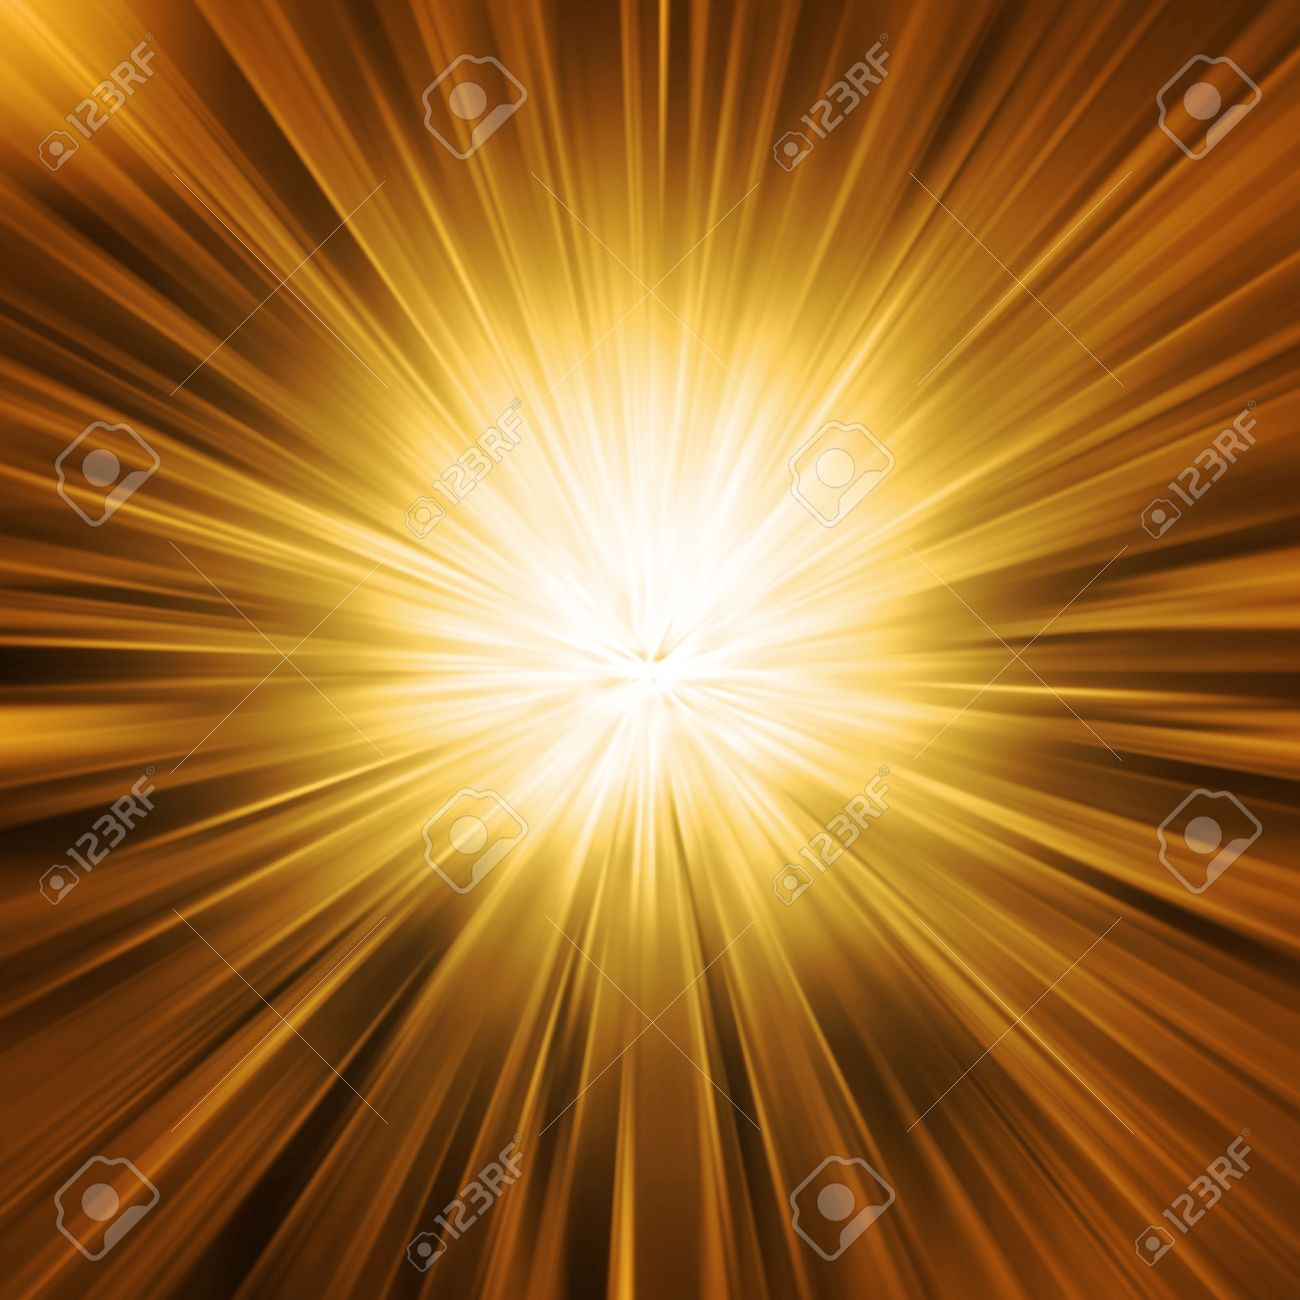 gold rays of light stock photo 7201995